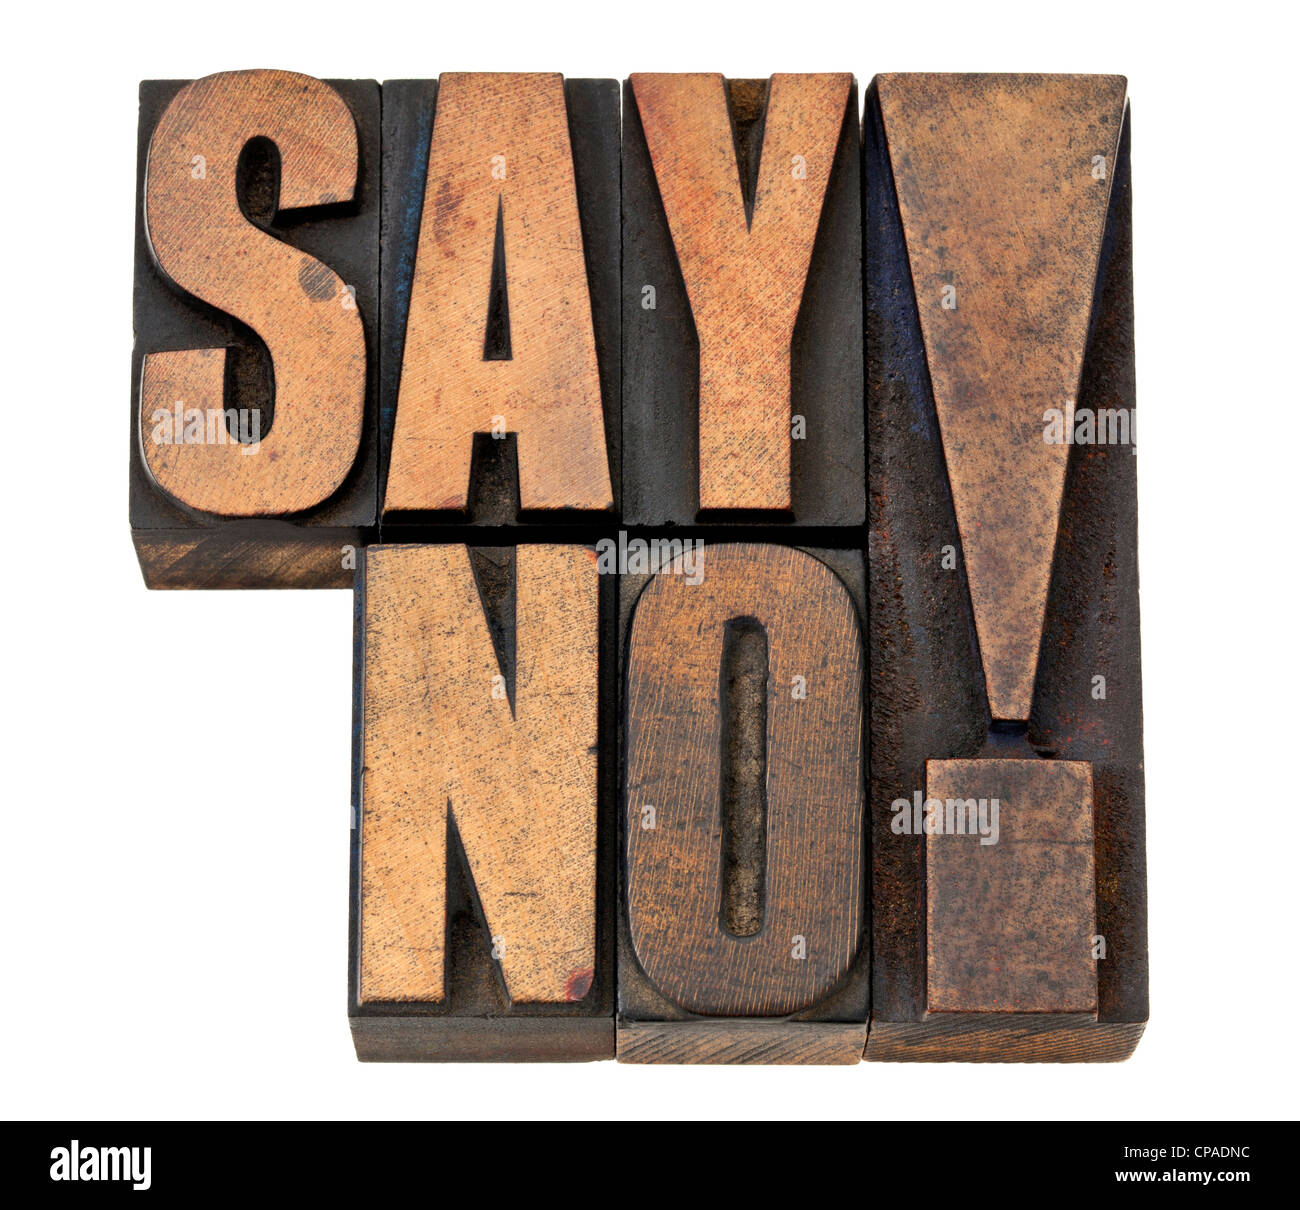 say no exclamation - time management or fighting violence concept isolated text in vintage letterpress wood type - Stock Image